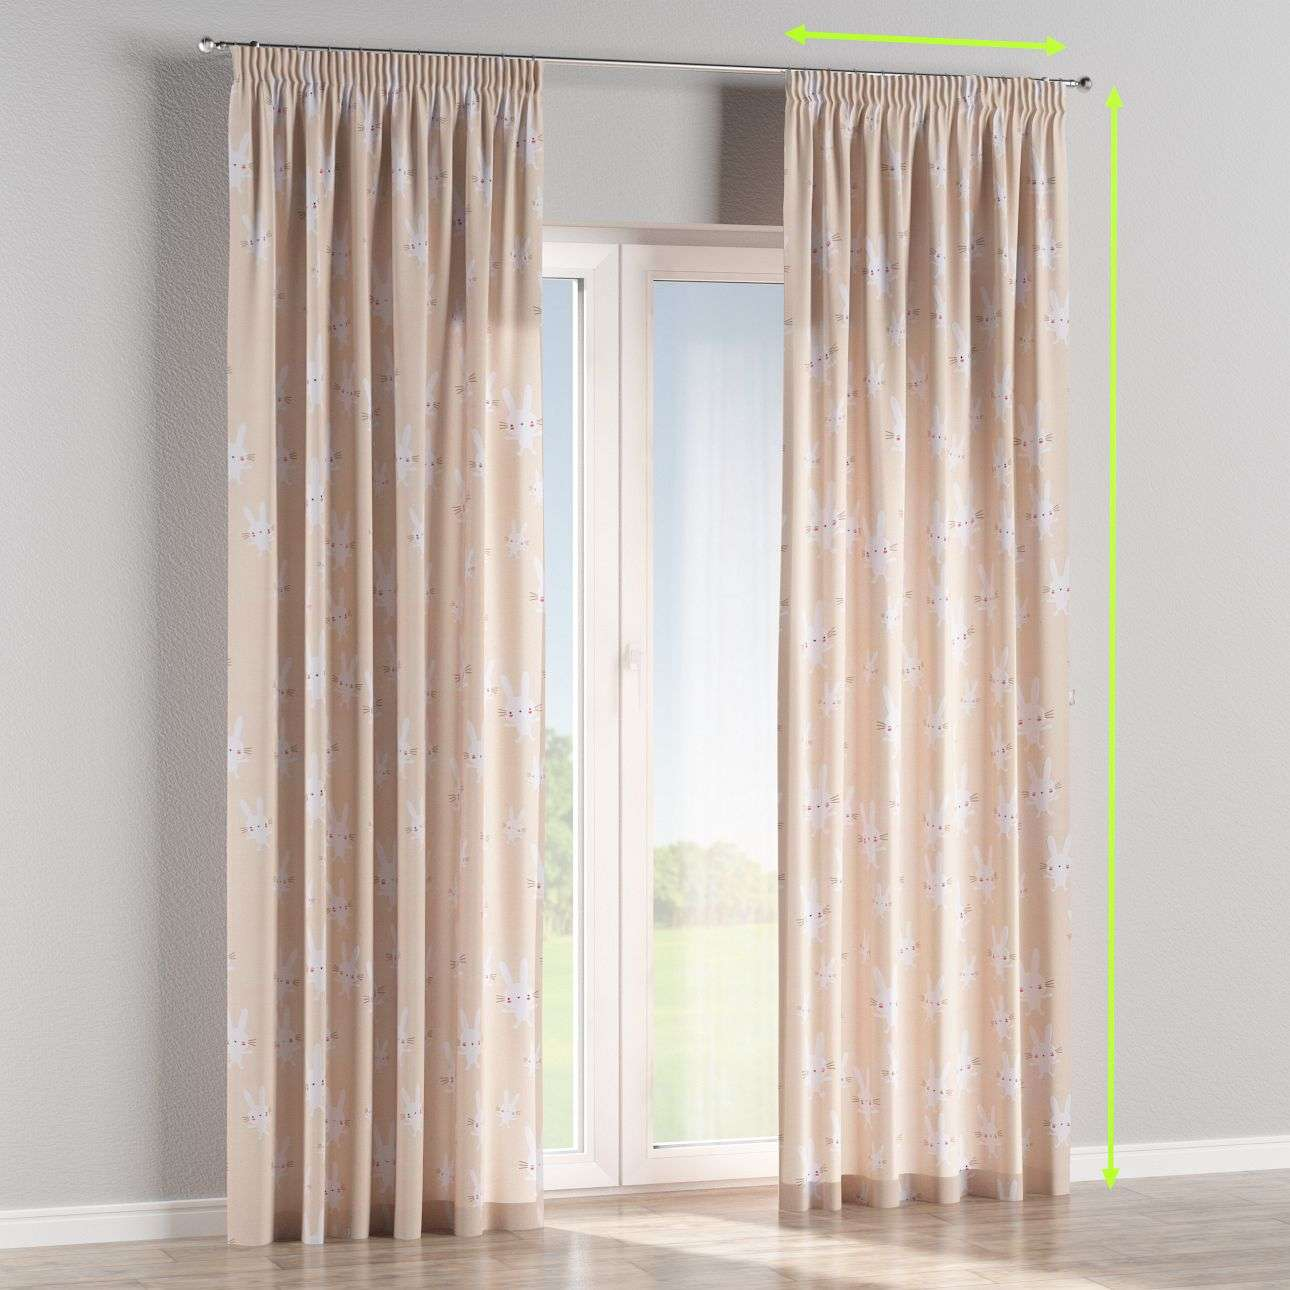 Pencil pleat curtains in collection Apanona, fabric: 151-00